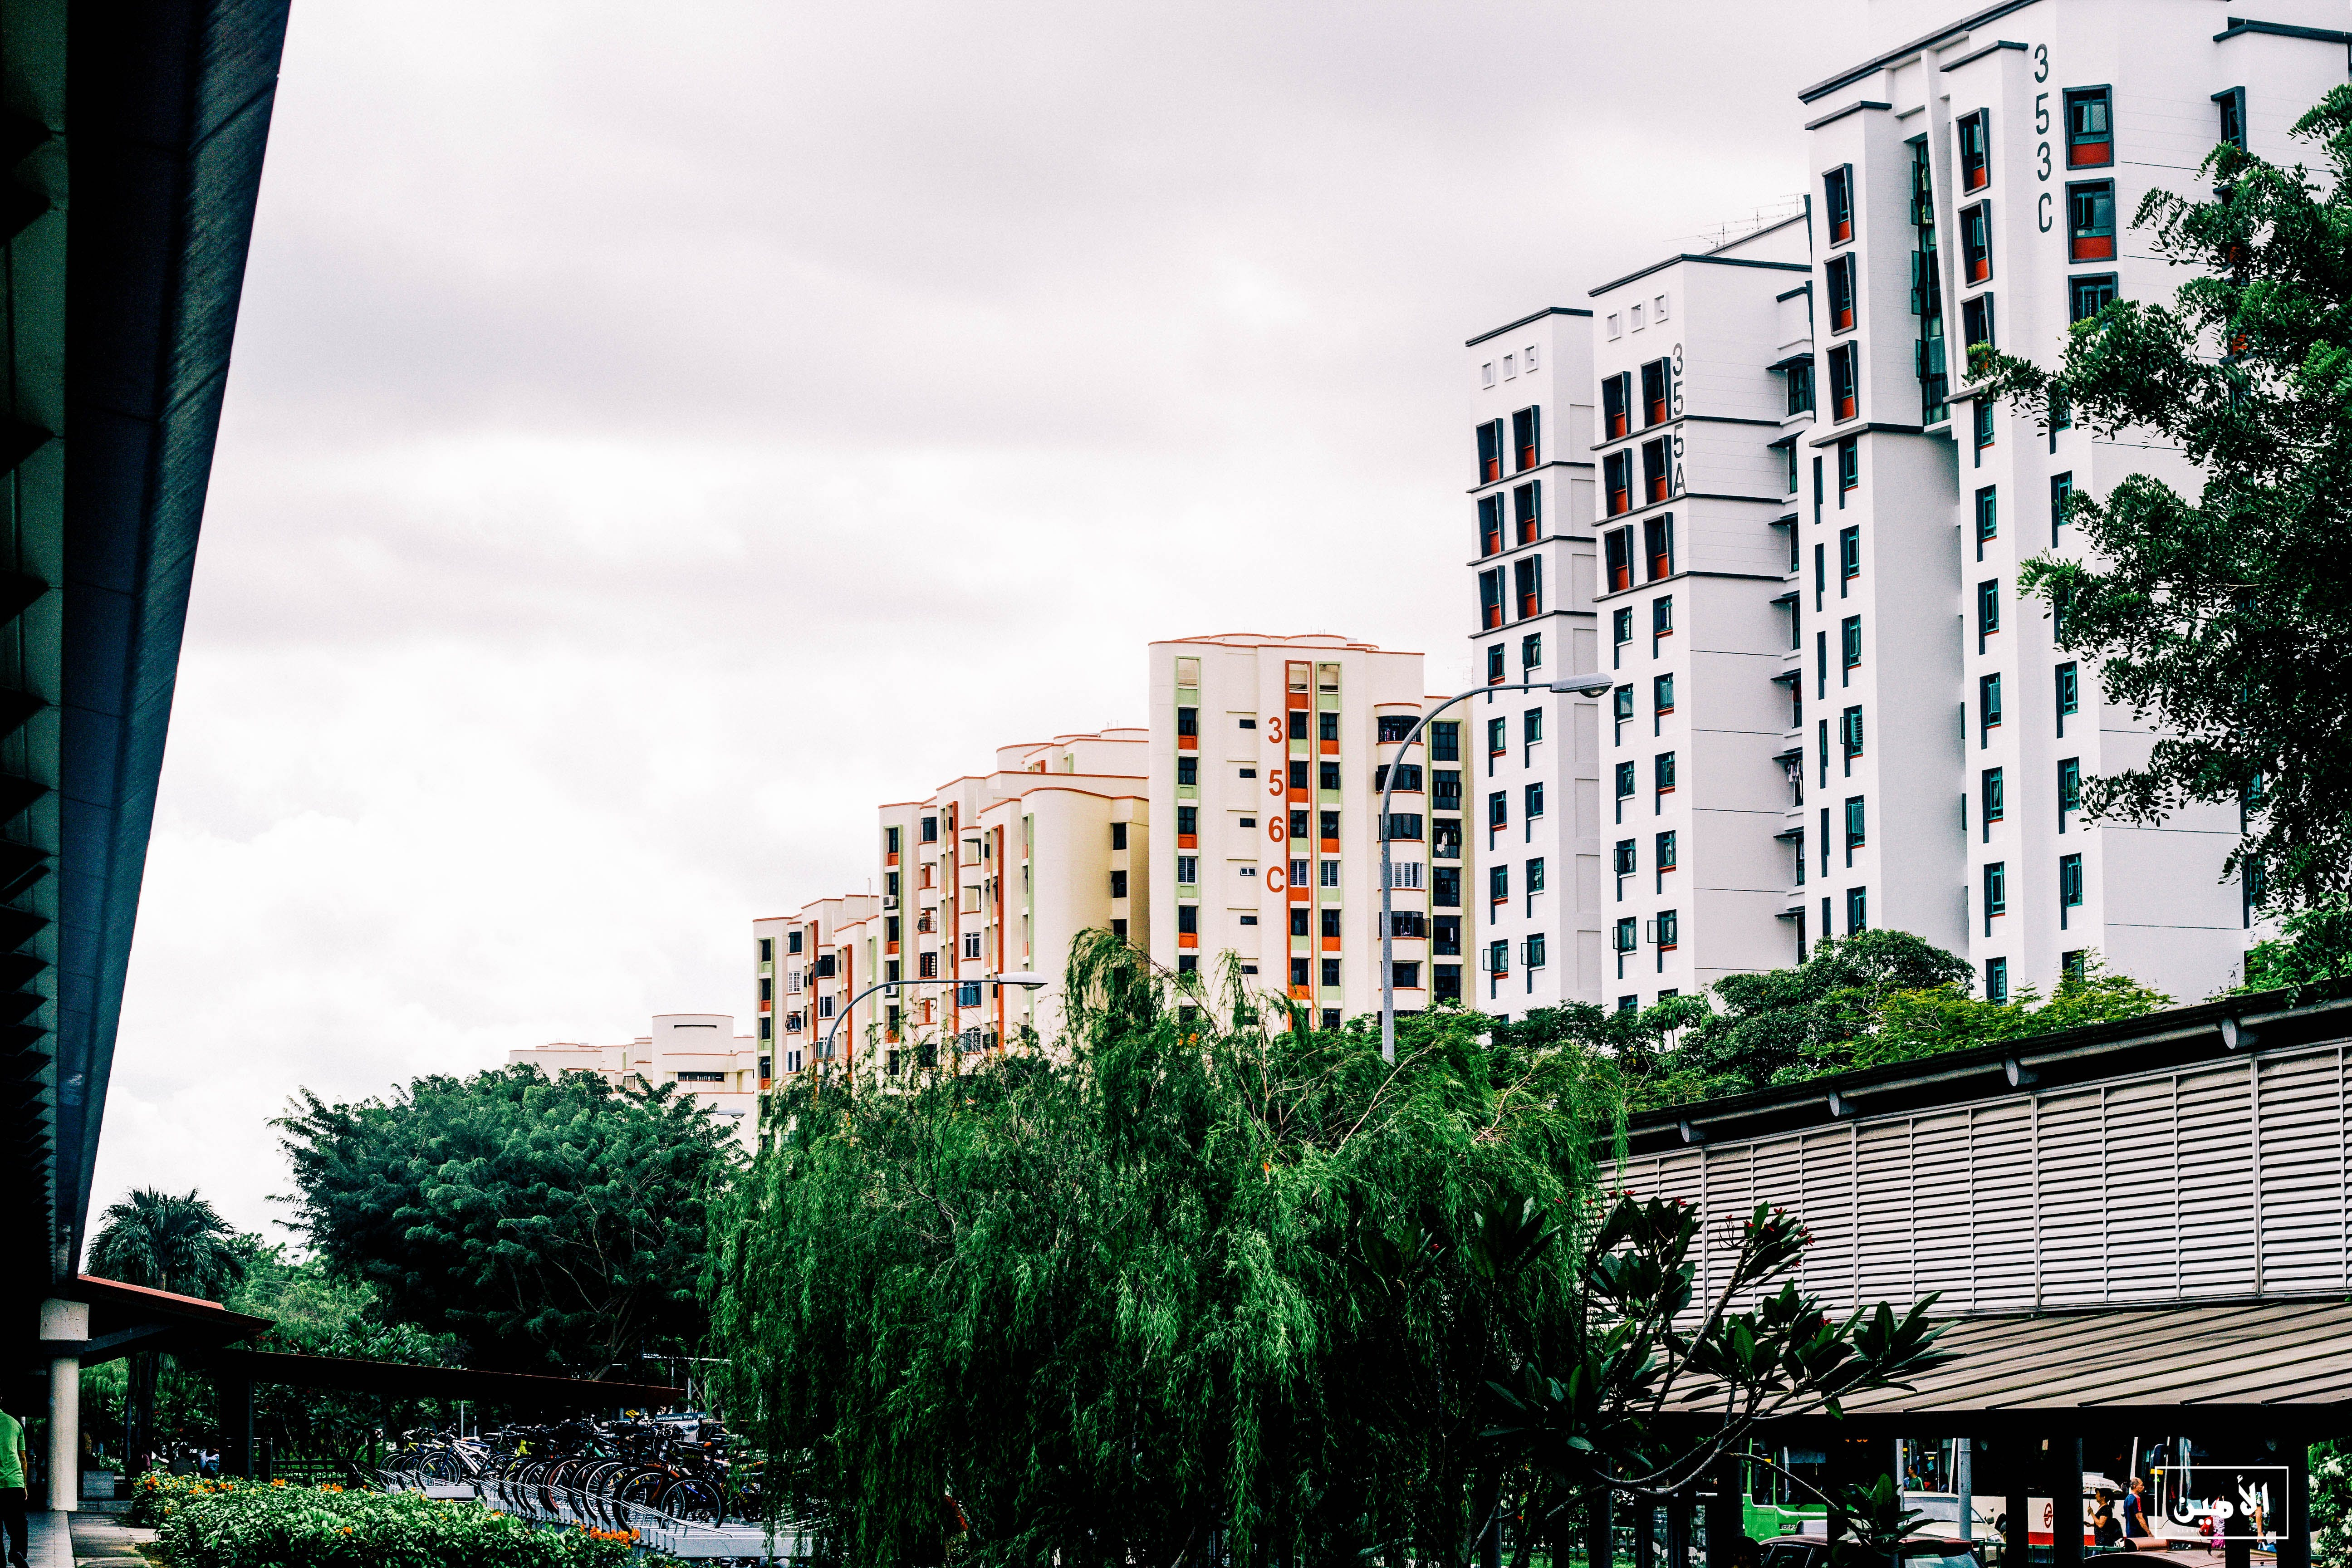 Free stock photo of Green&Cleanland, singapore